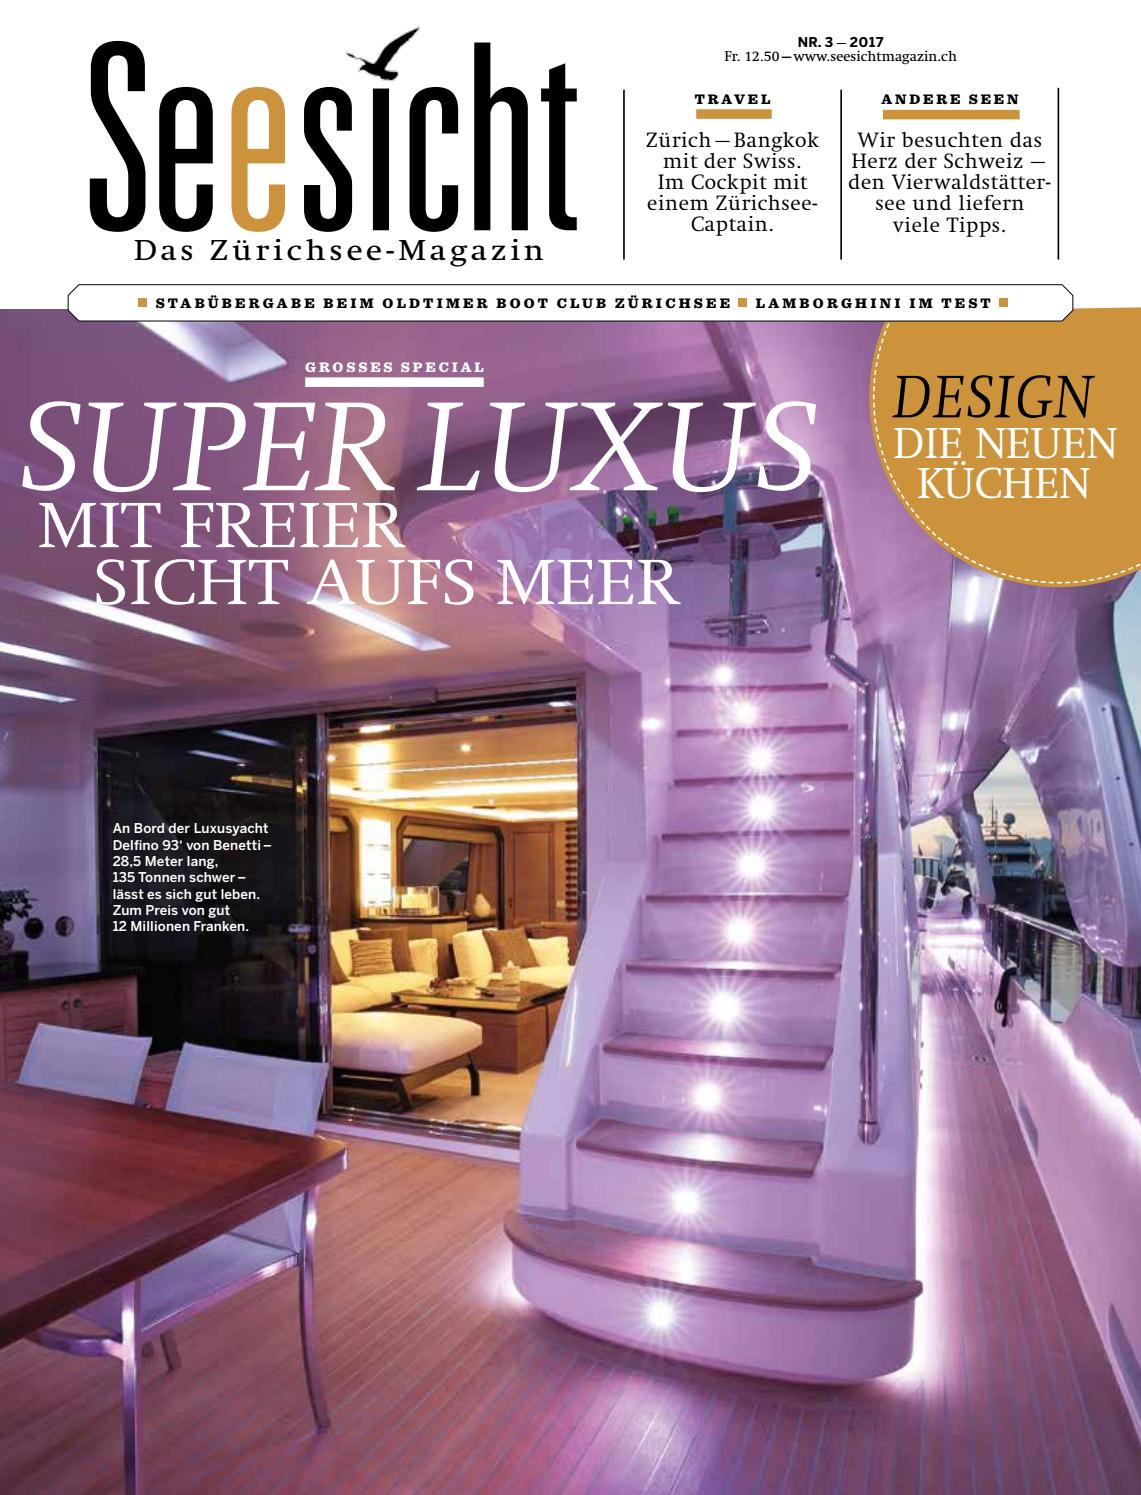 Seesicht 3/2017 by Seesicht Media AG - issuu